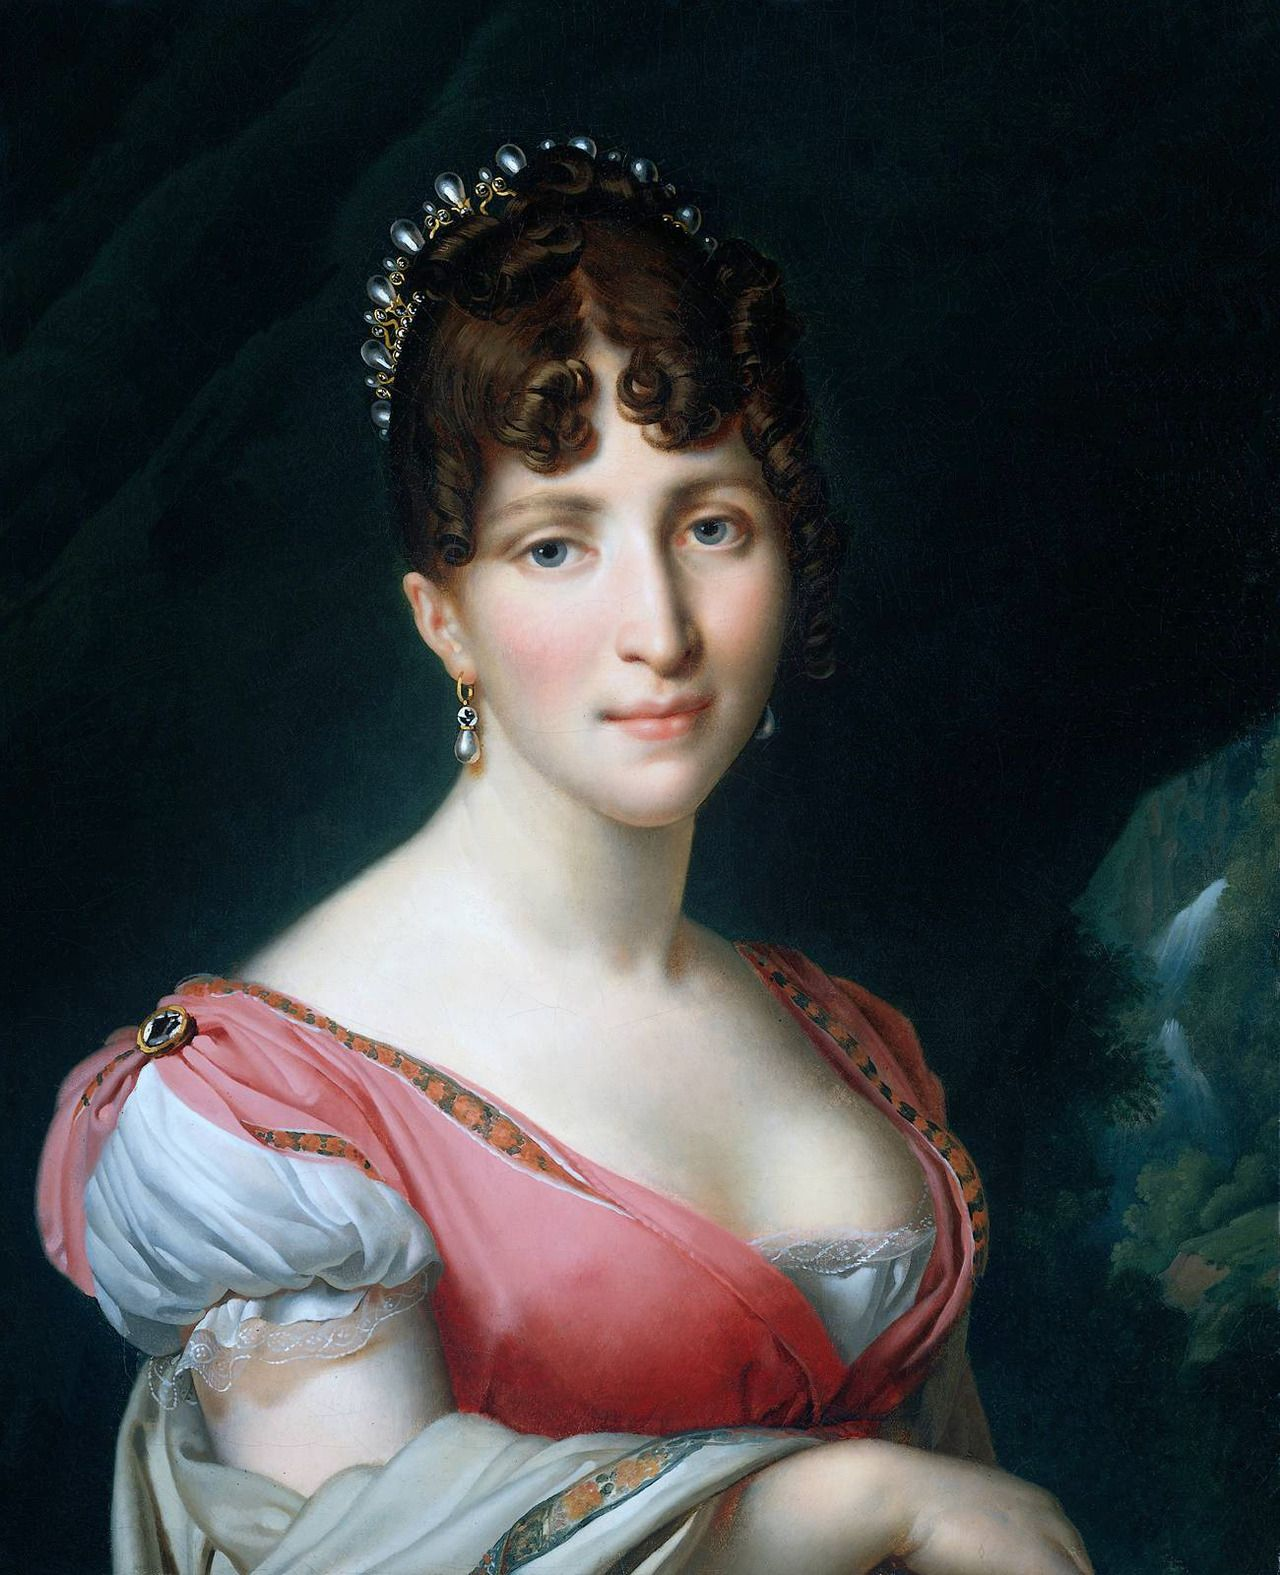 Hortense de Beauharnais (1808). Anne-Louis Girodet de Roucy-Triosson (French, 1767-1824). Oil on canvas. Rijksmuseum. Hortense Eugénie Cécile Bonaparte (née de Beauharnais, 1783–1837), Queen Consort of Holland, was the stepdaughter of Emperor Napoleon I, being the daughter of his first wife, Joséphine de Beauharnais. She later became the wife of the former's brother, Louis Bonaparte, King of Holland, and the mother of Napoleon III, Emperor of the French.